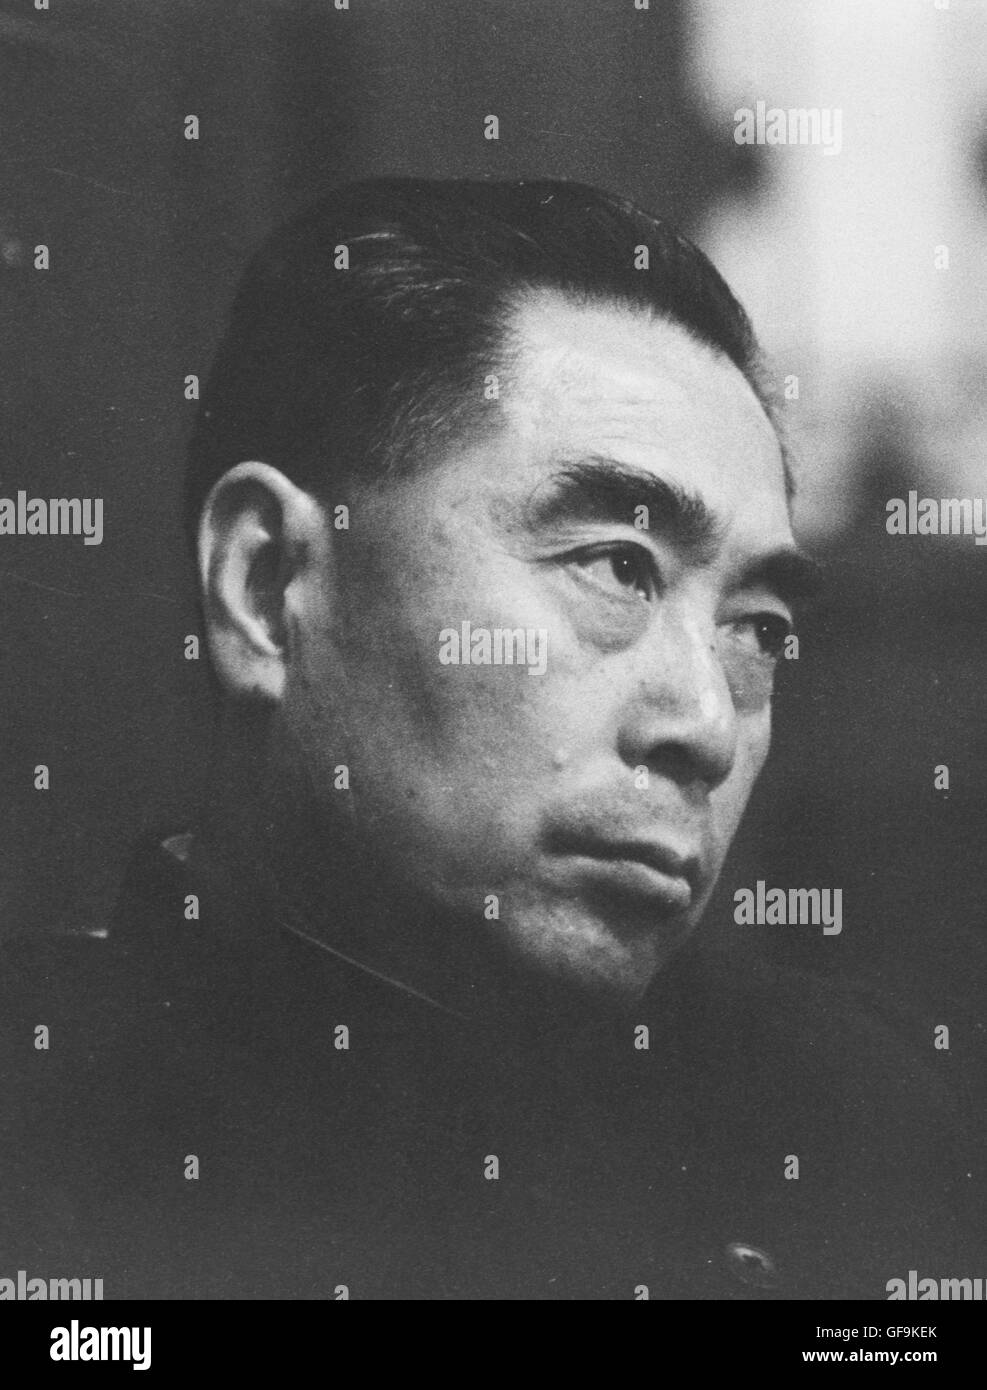 A portrait of Chou En-Lai, the Premiere of the People's Republic of China,1957. - Stock Image